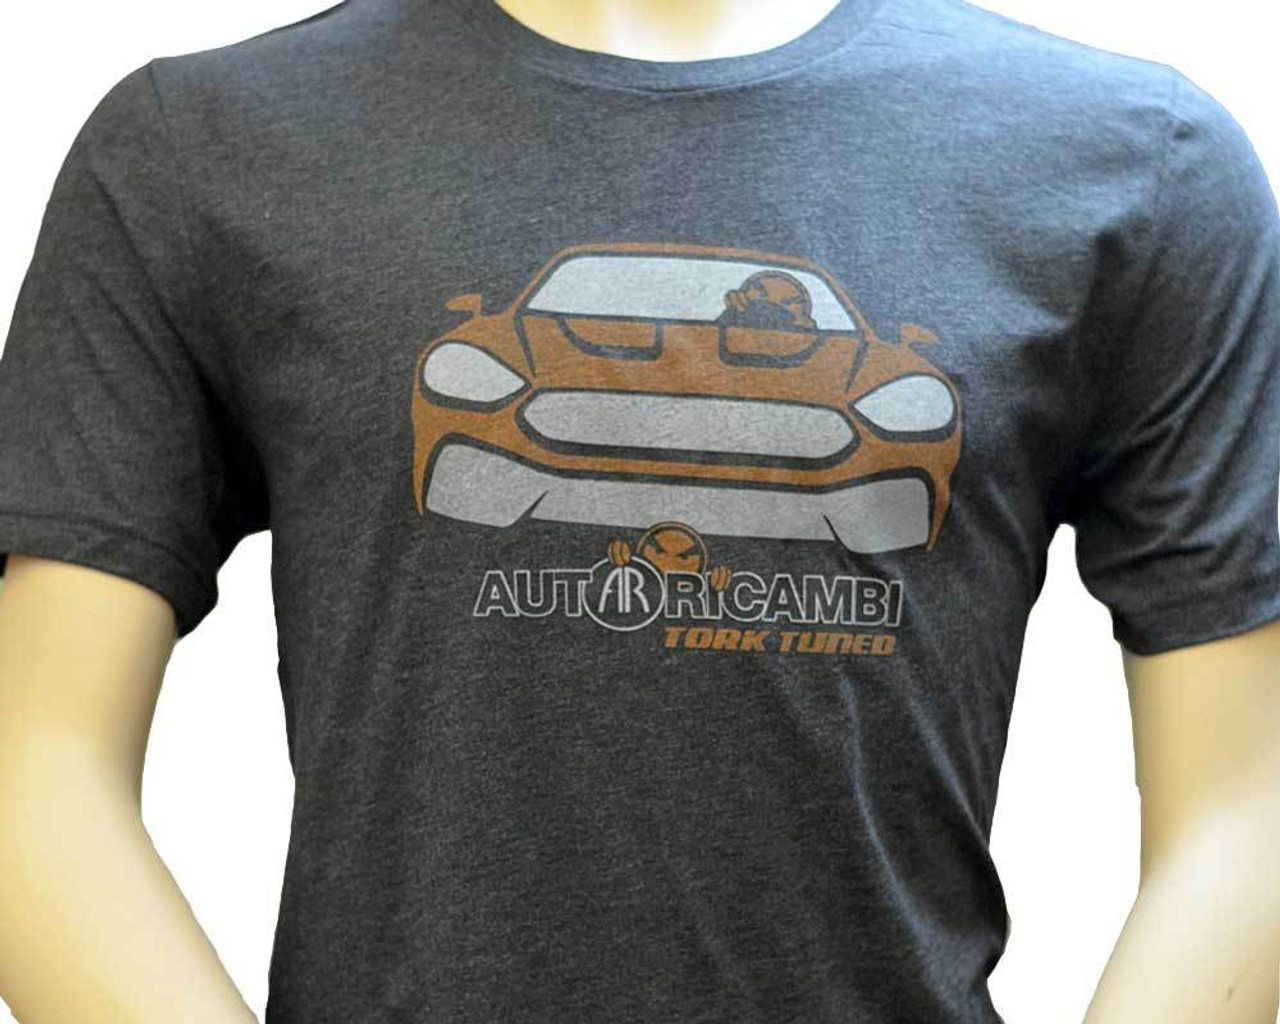 Tork Tuned Tee Shirt - by Auto Ricambi